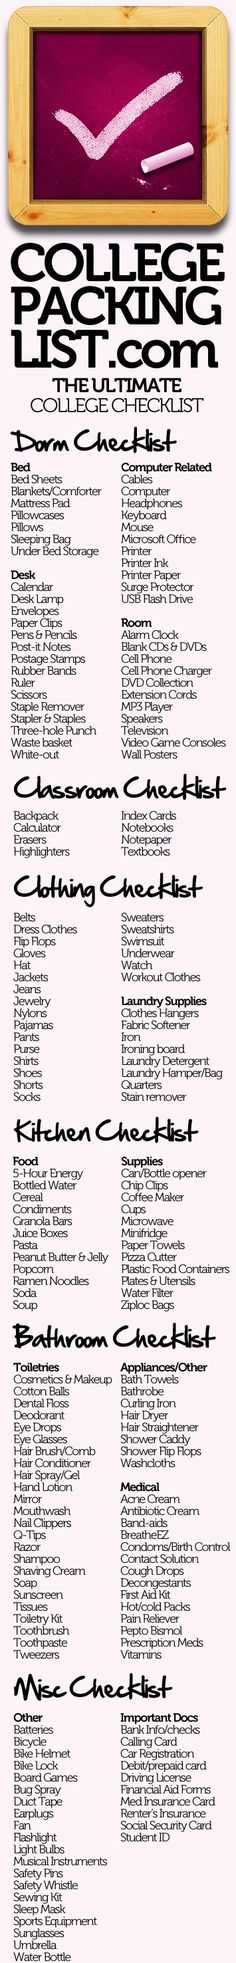 Even though i'm staying home, this is still just a good general checklist for living on your own...someday :)